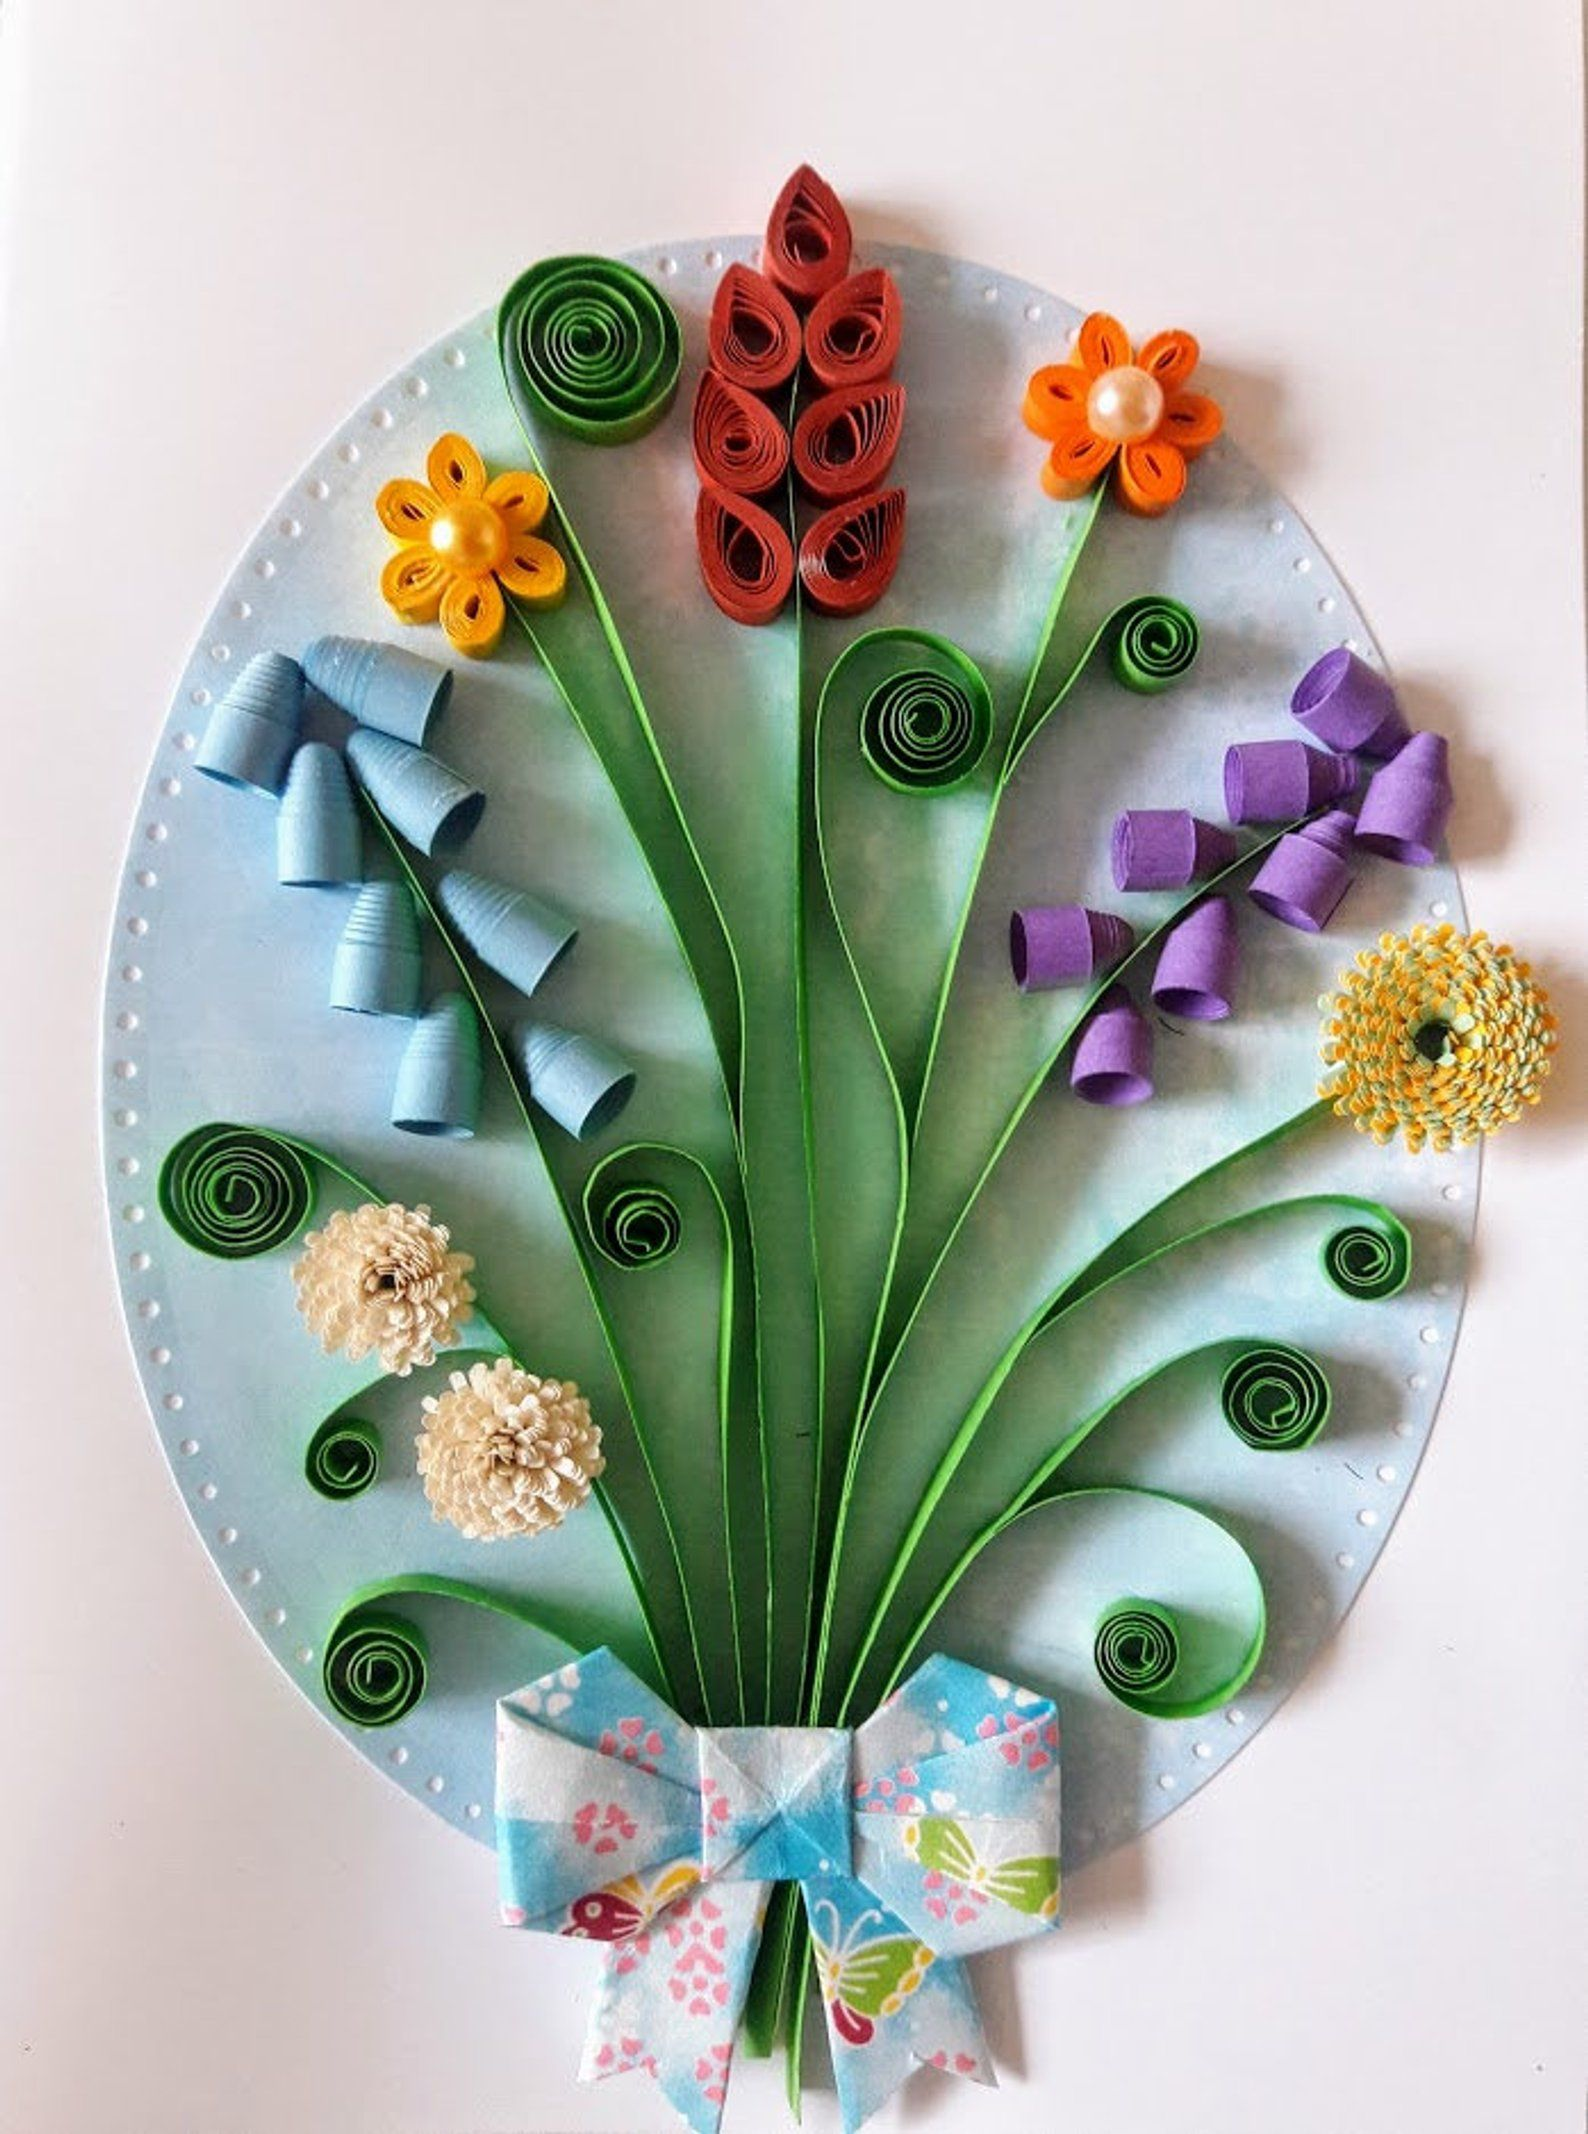 quilled greeting card with flowers 2  etsy  quilling